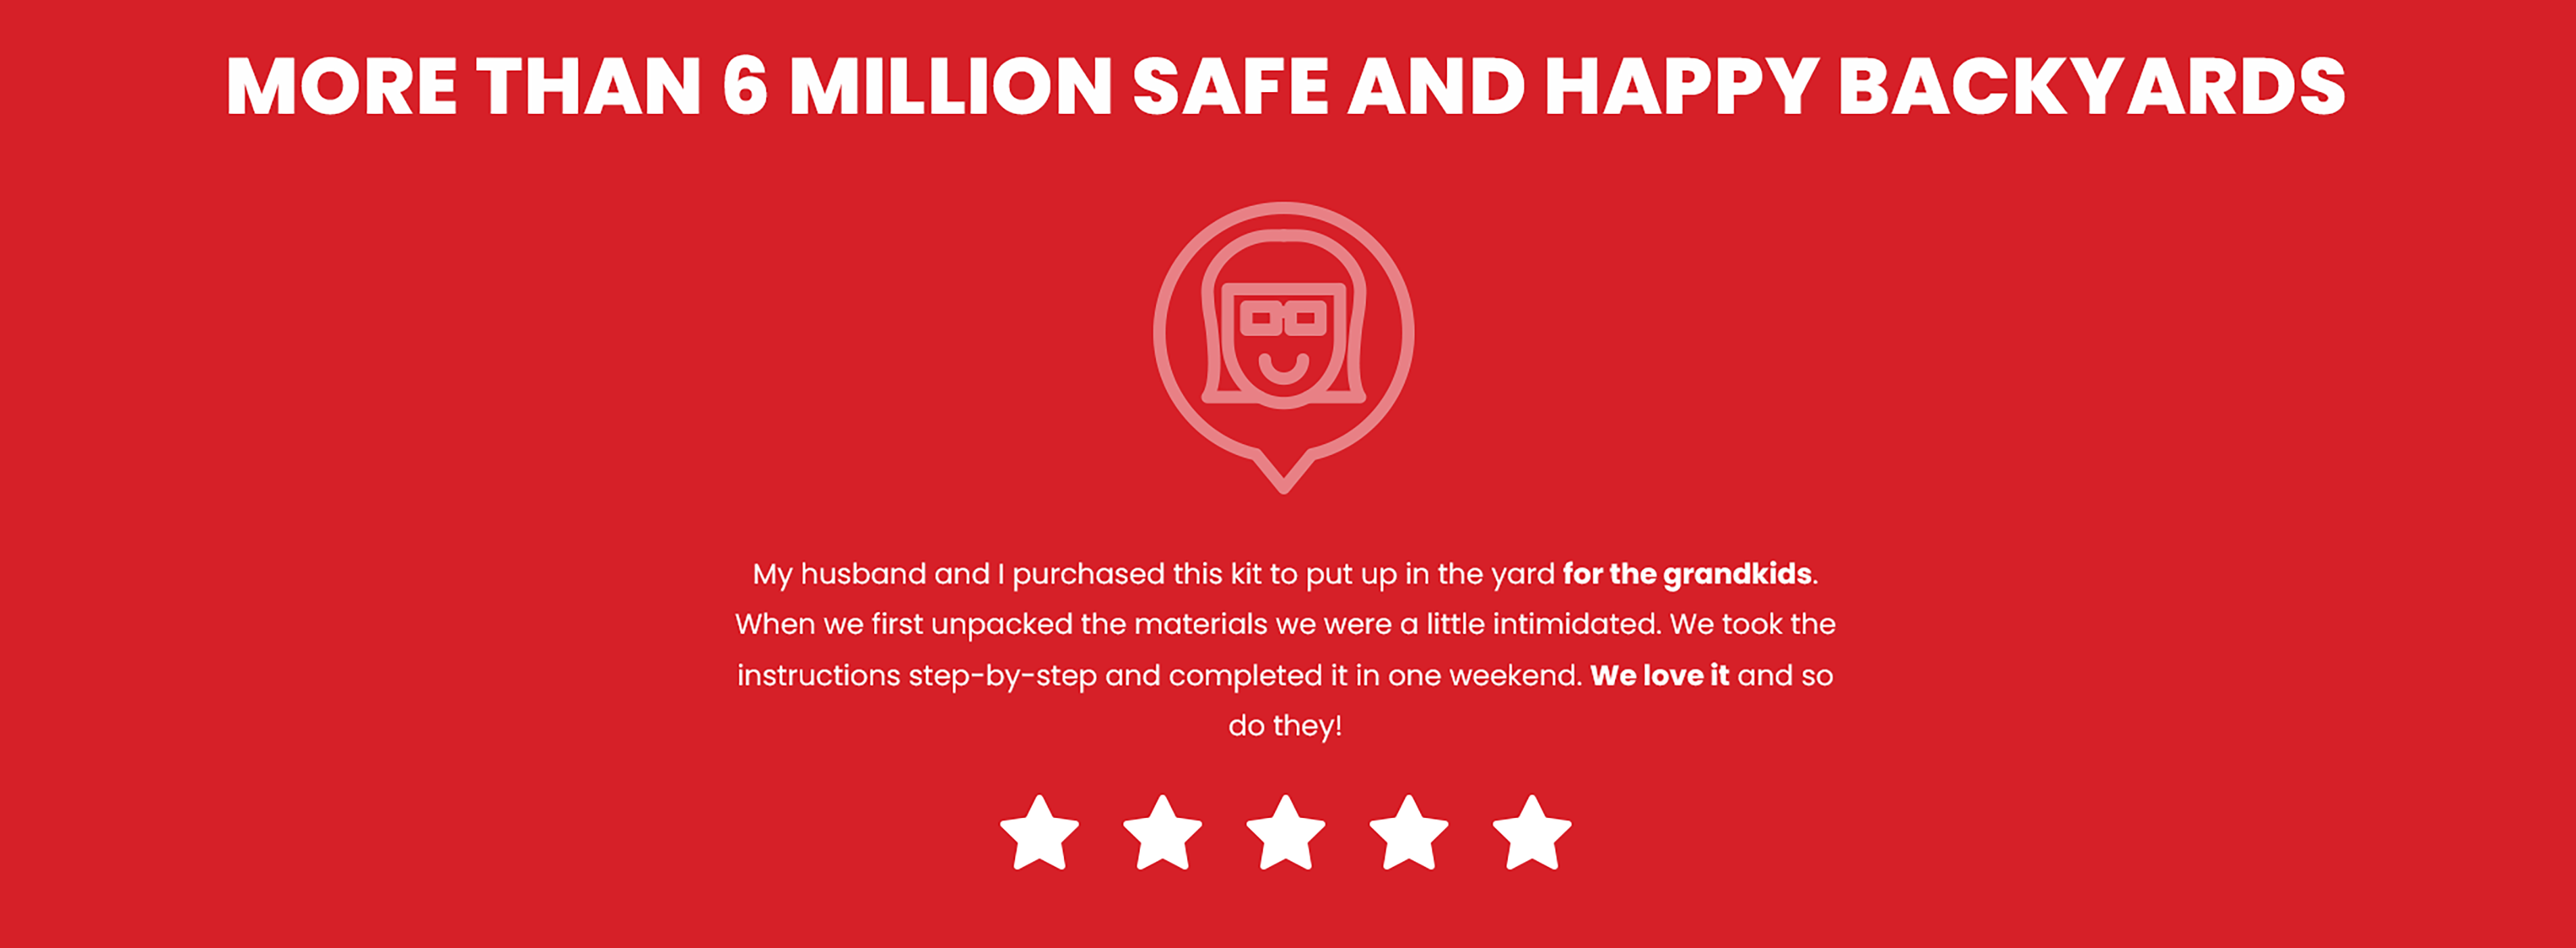 More than 6 million safe and happy backyards.